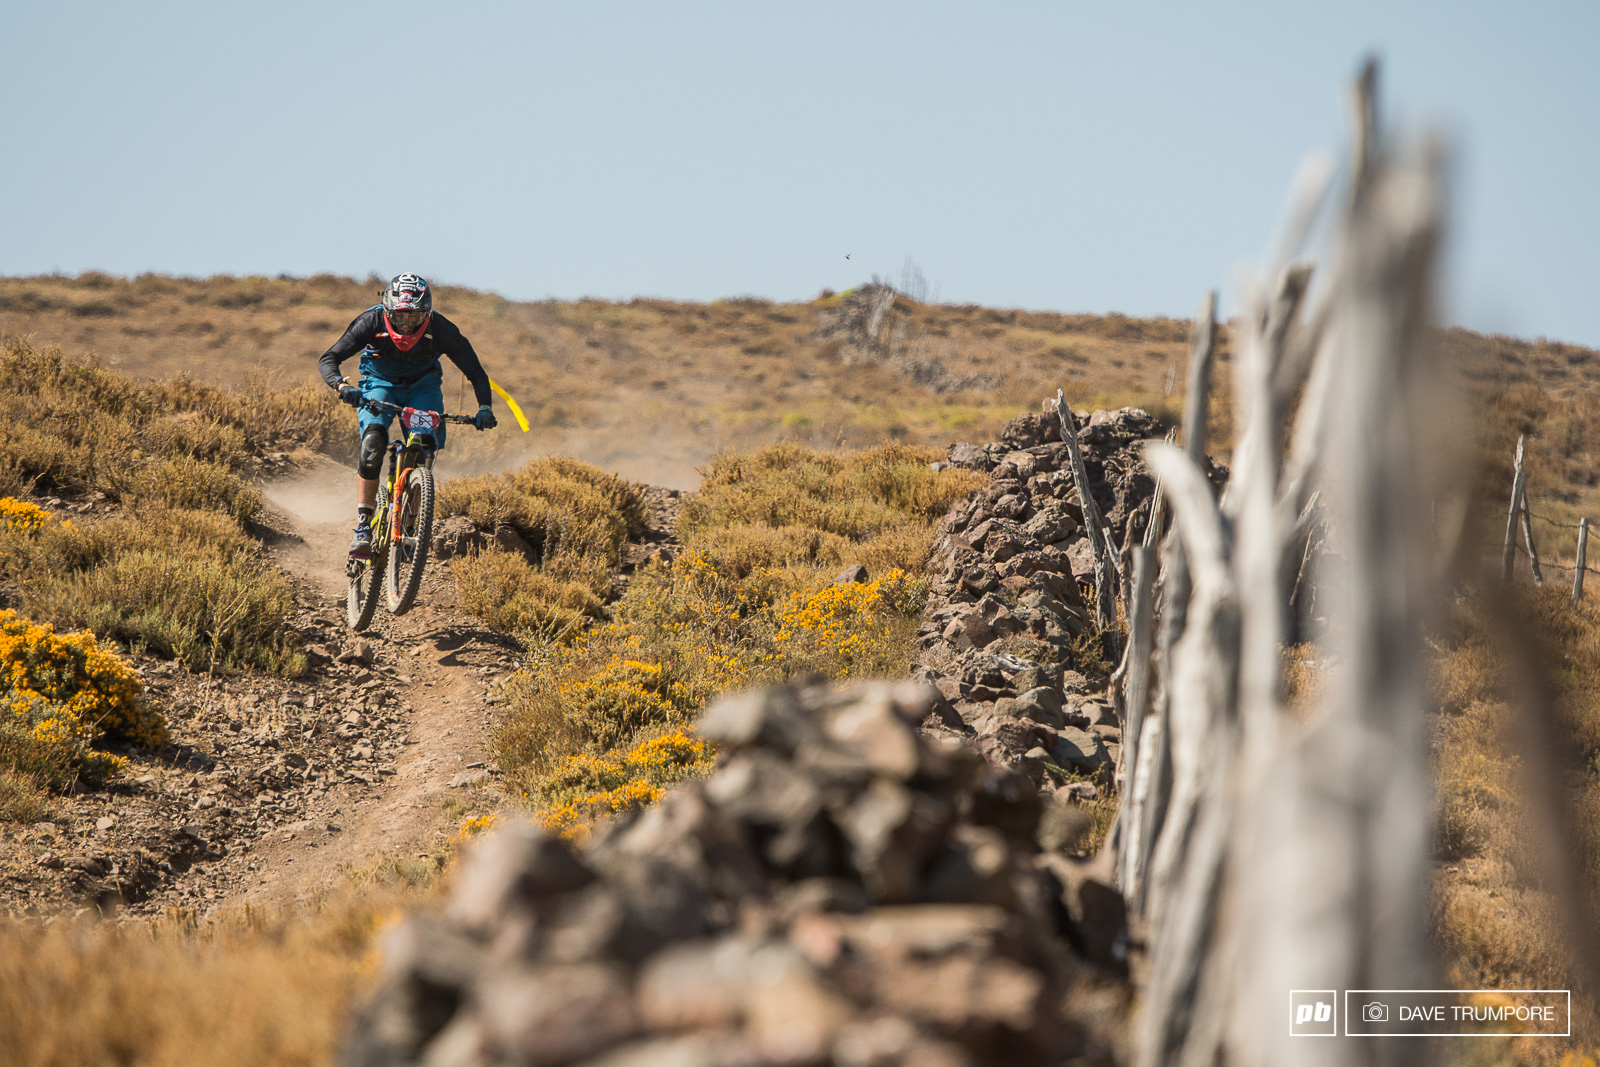 Rat Boy loving the big long stages in the Andes.